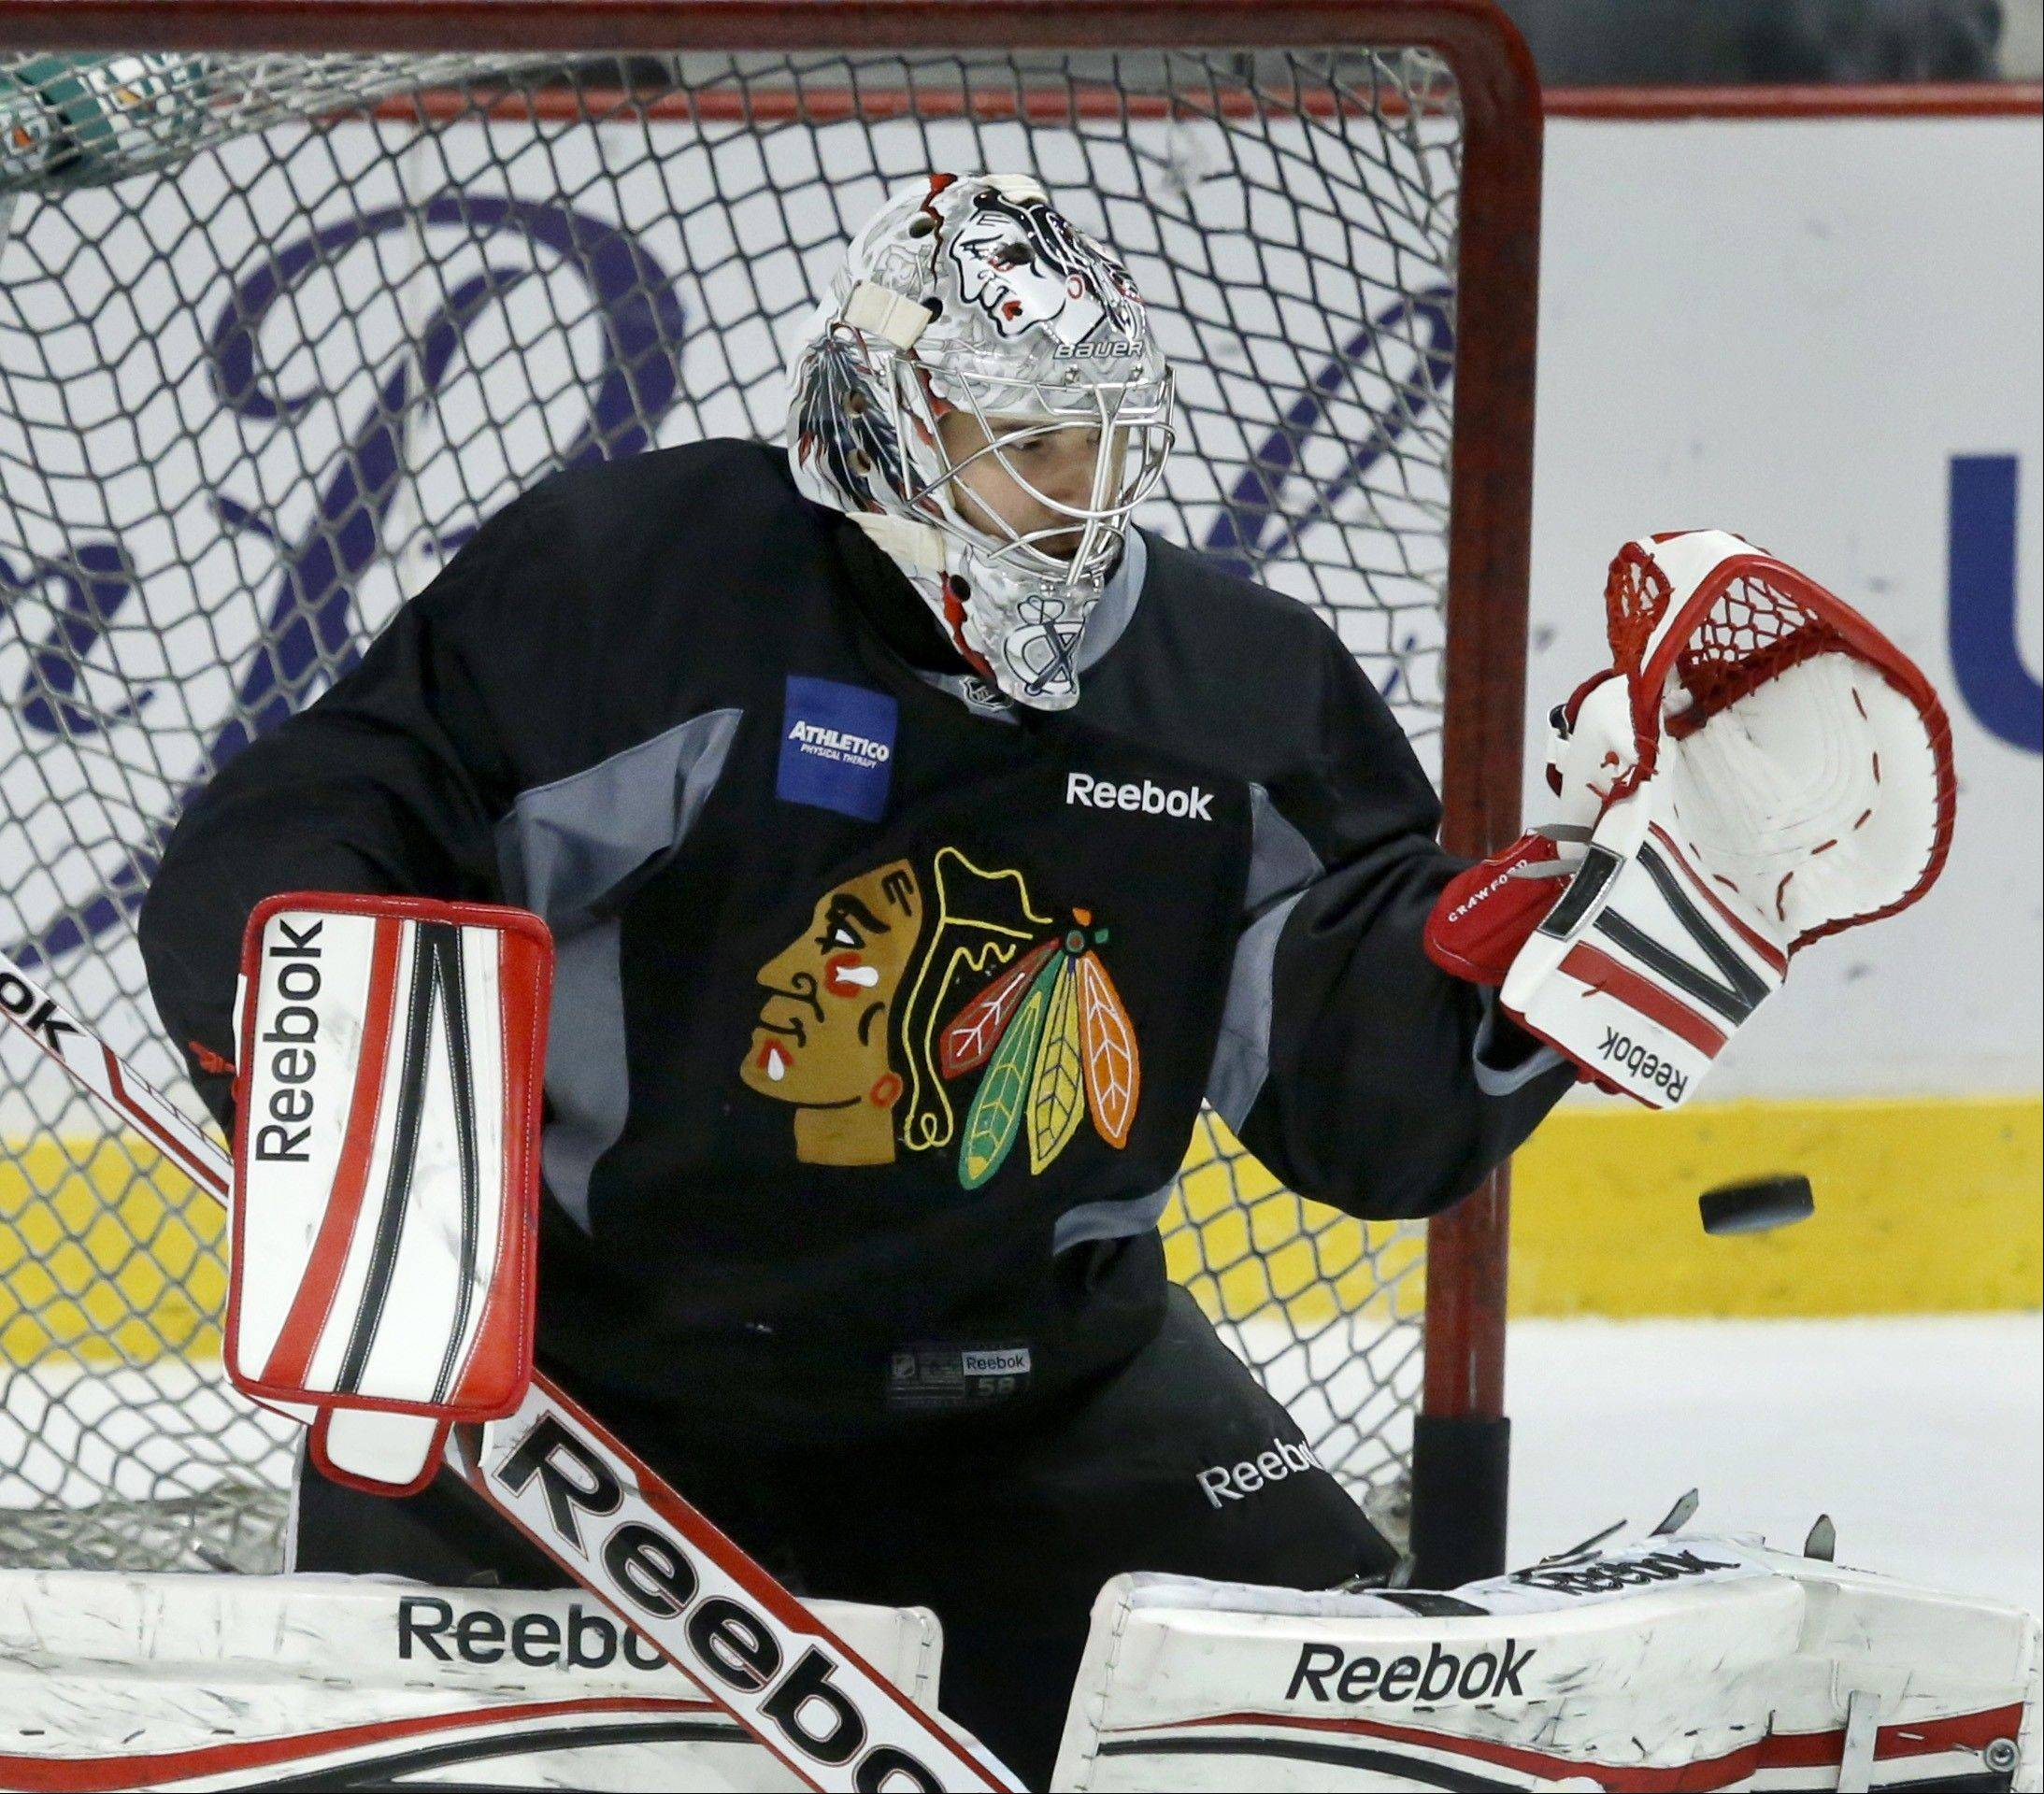 Chicago Blackhawks goalie Corey Crawford gets in some practice Friday in Chicago. The Blackhawks will host the Boston Bruins in Game 5 of the Stanley Cup Final series Saturday.